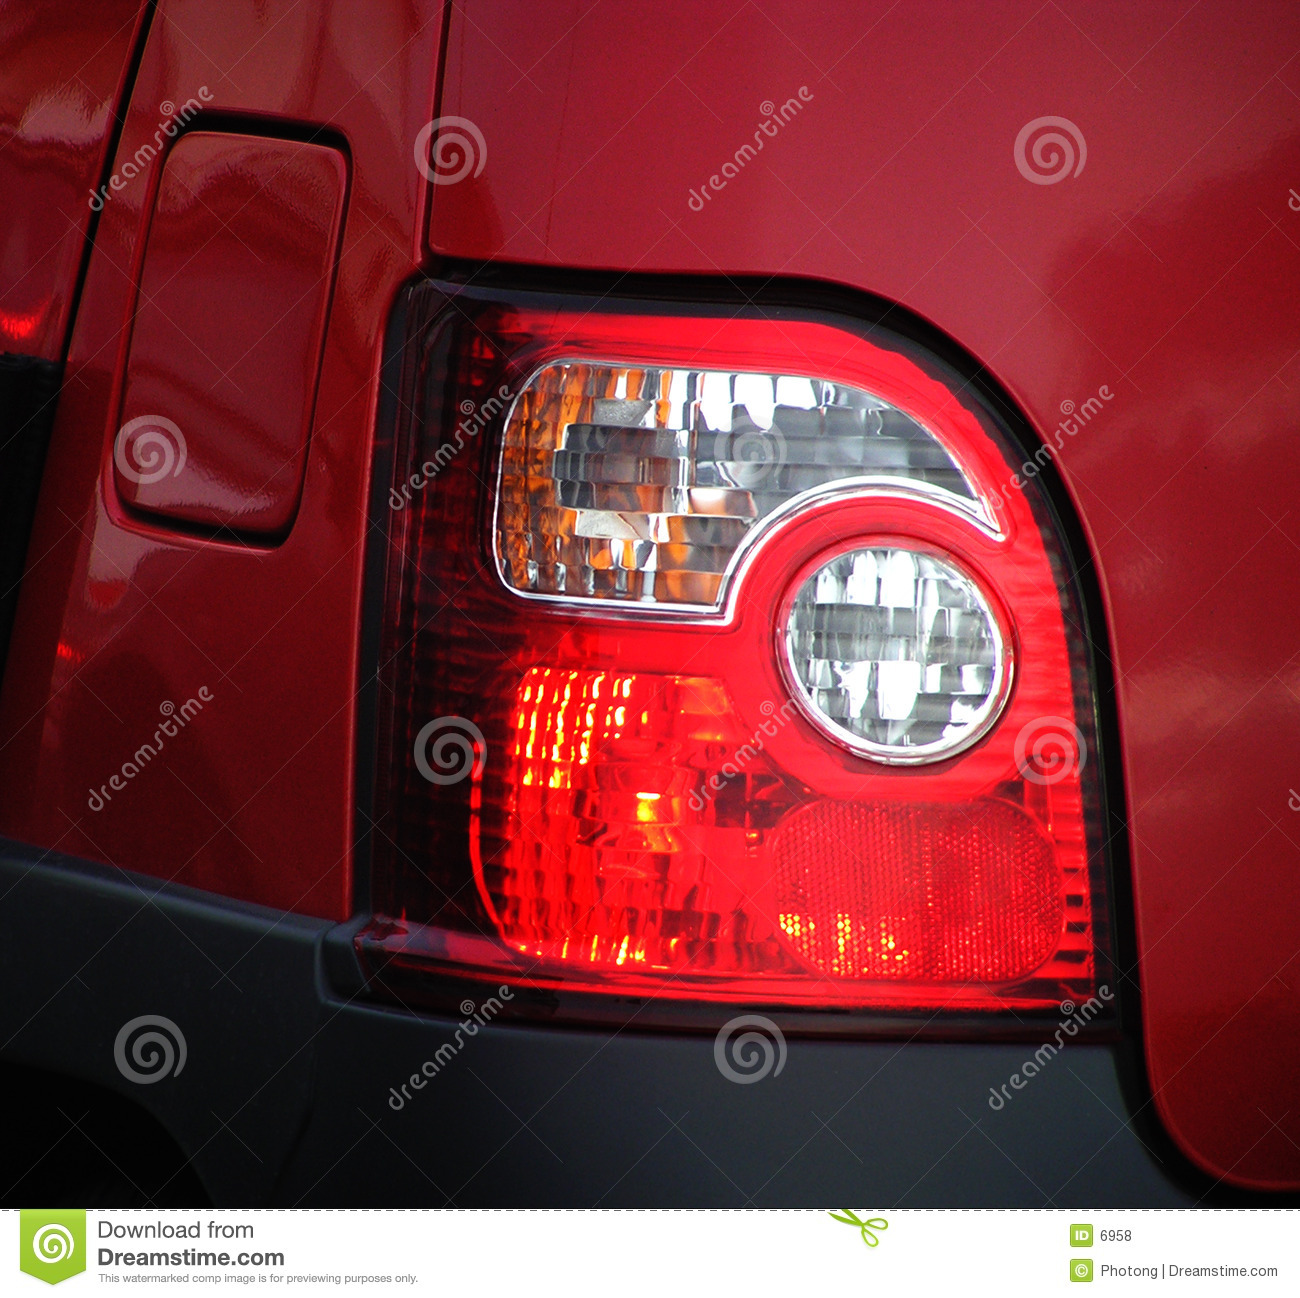 Rear brake lights